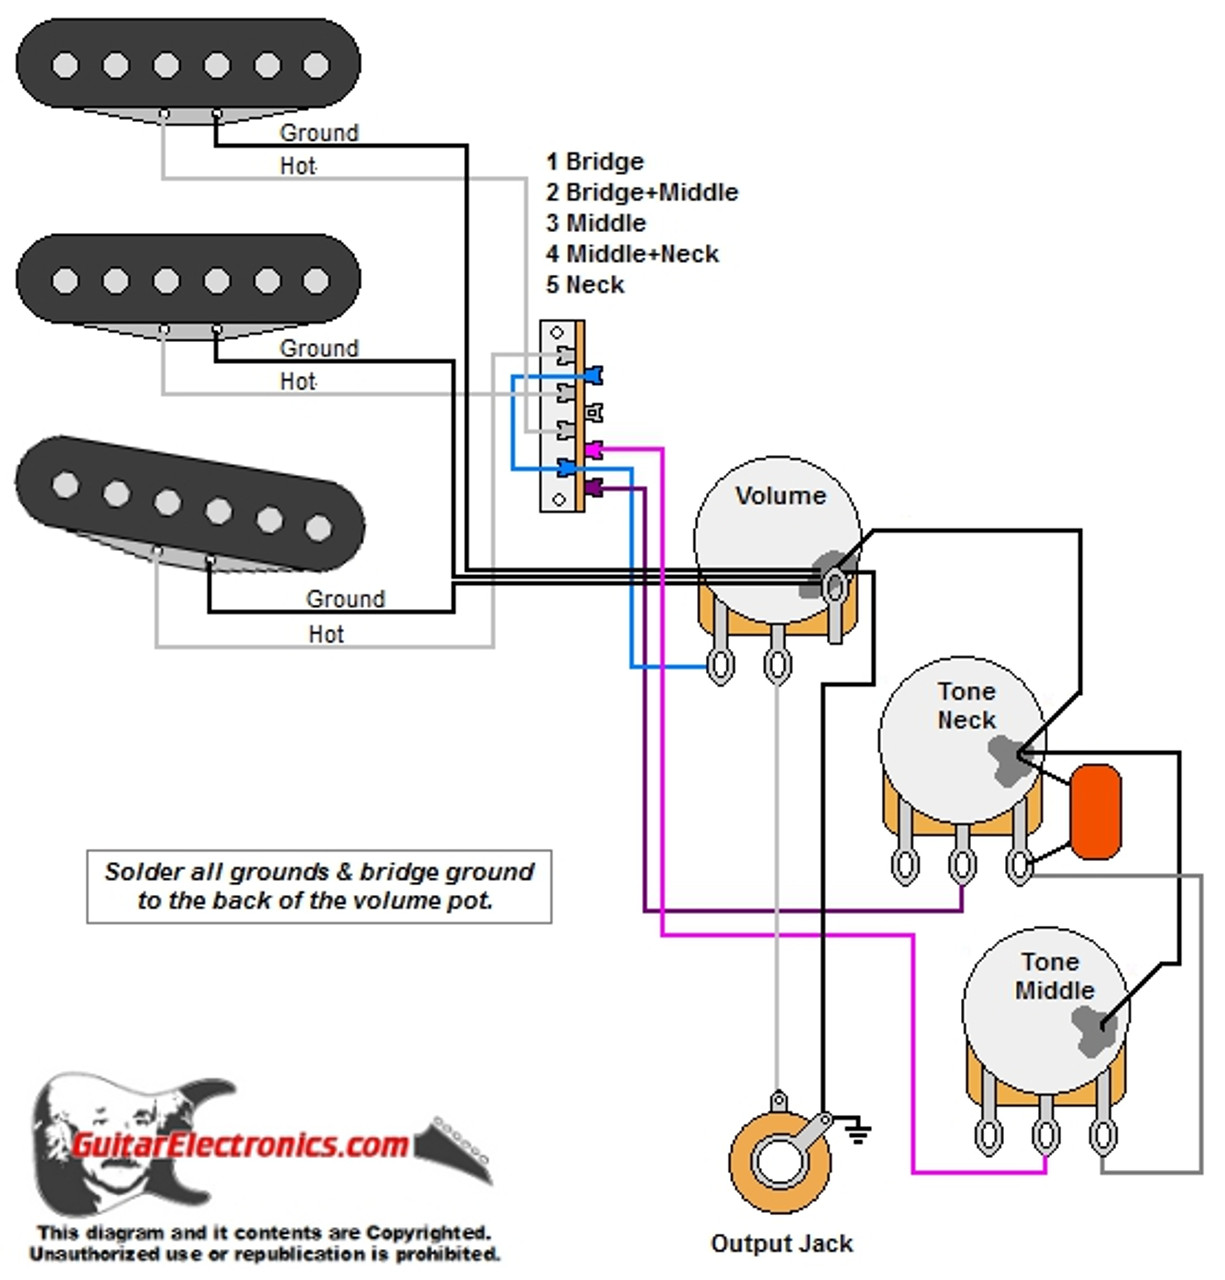 Wiring Diagram Stratocaster Whammy Bar - Wiring Diagrams Structure on